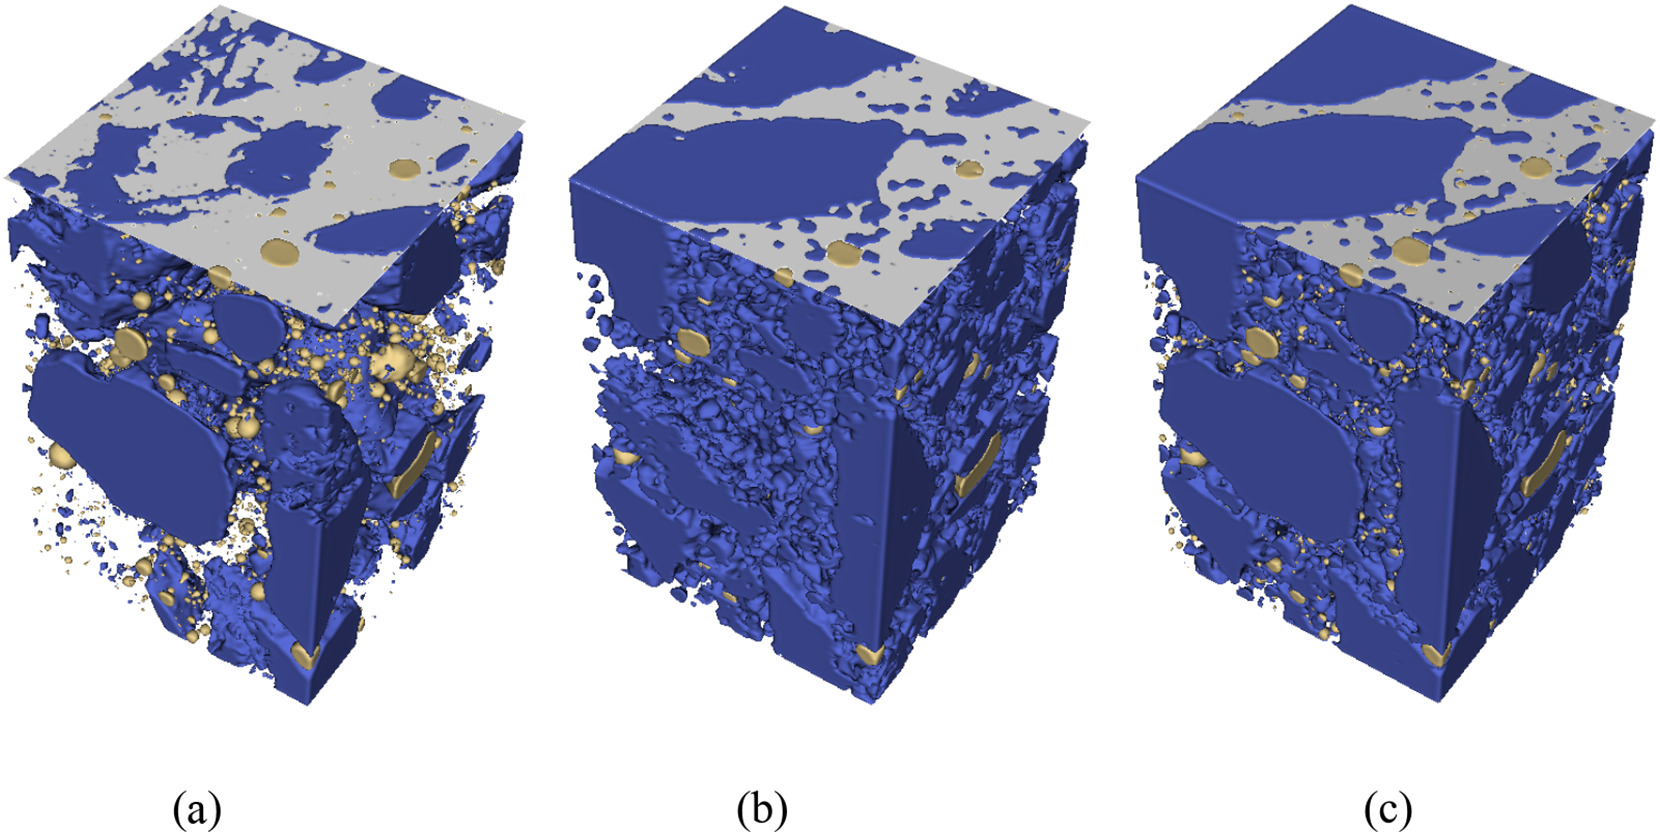 Microstructure of concrete: neutron & X-ray tomography reconstruction